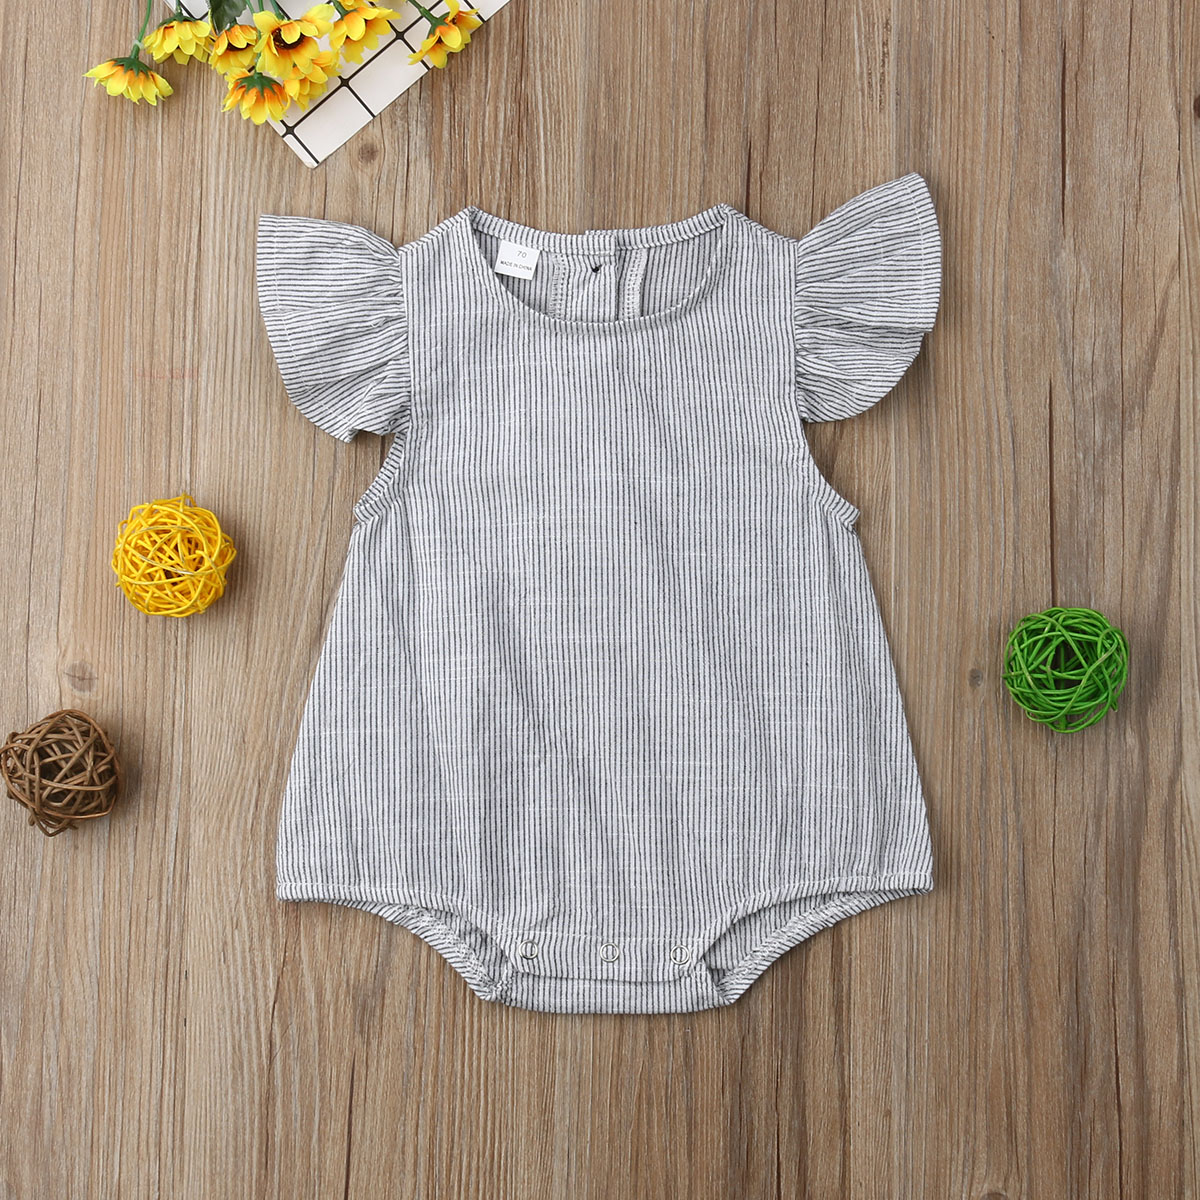 Newborn Baby Girls Cotton Striped   Romper   Jumpsuit Stripes Outfit Clothes Summer